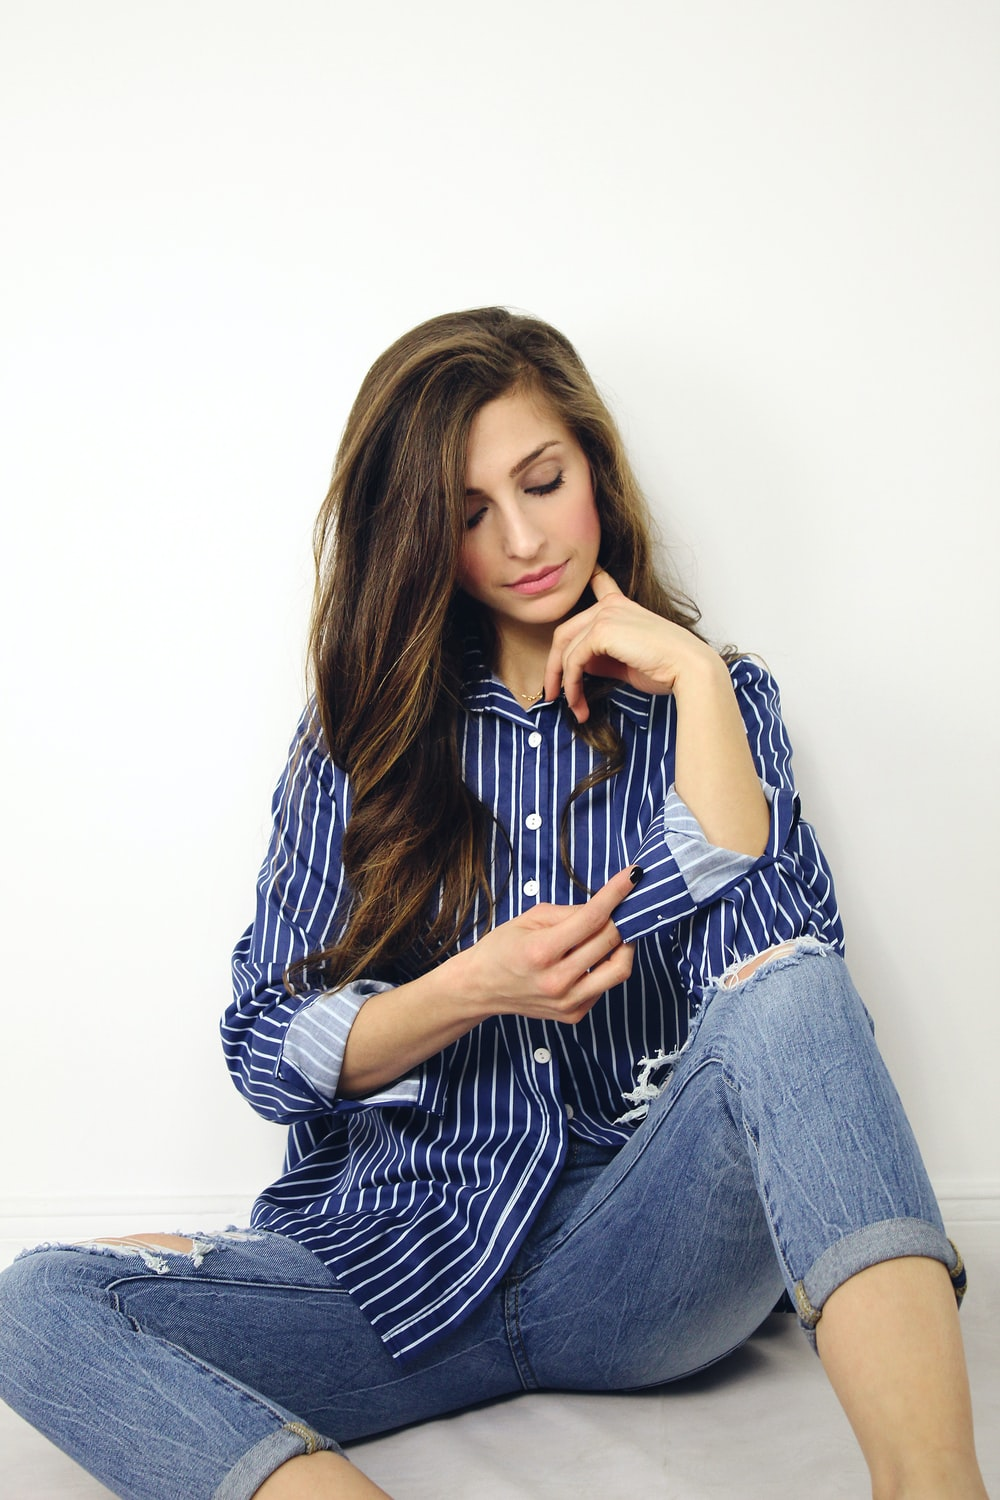 woman wearing blue and white striped dress shirt and blue denim jeans sitting on gray surface